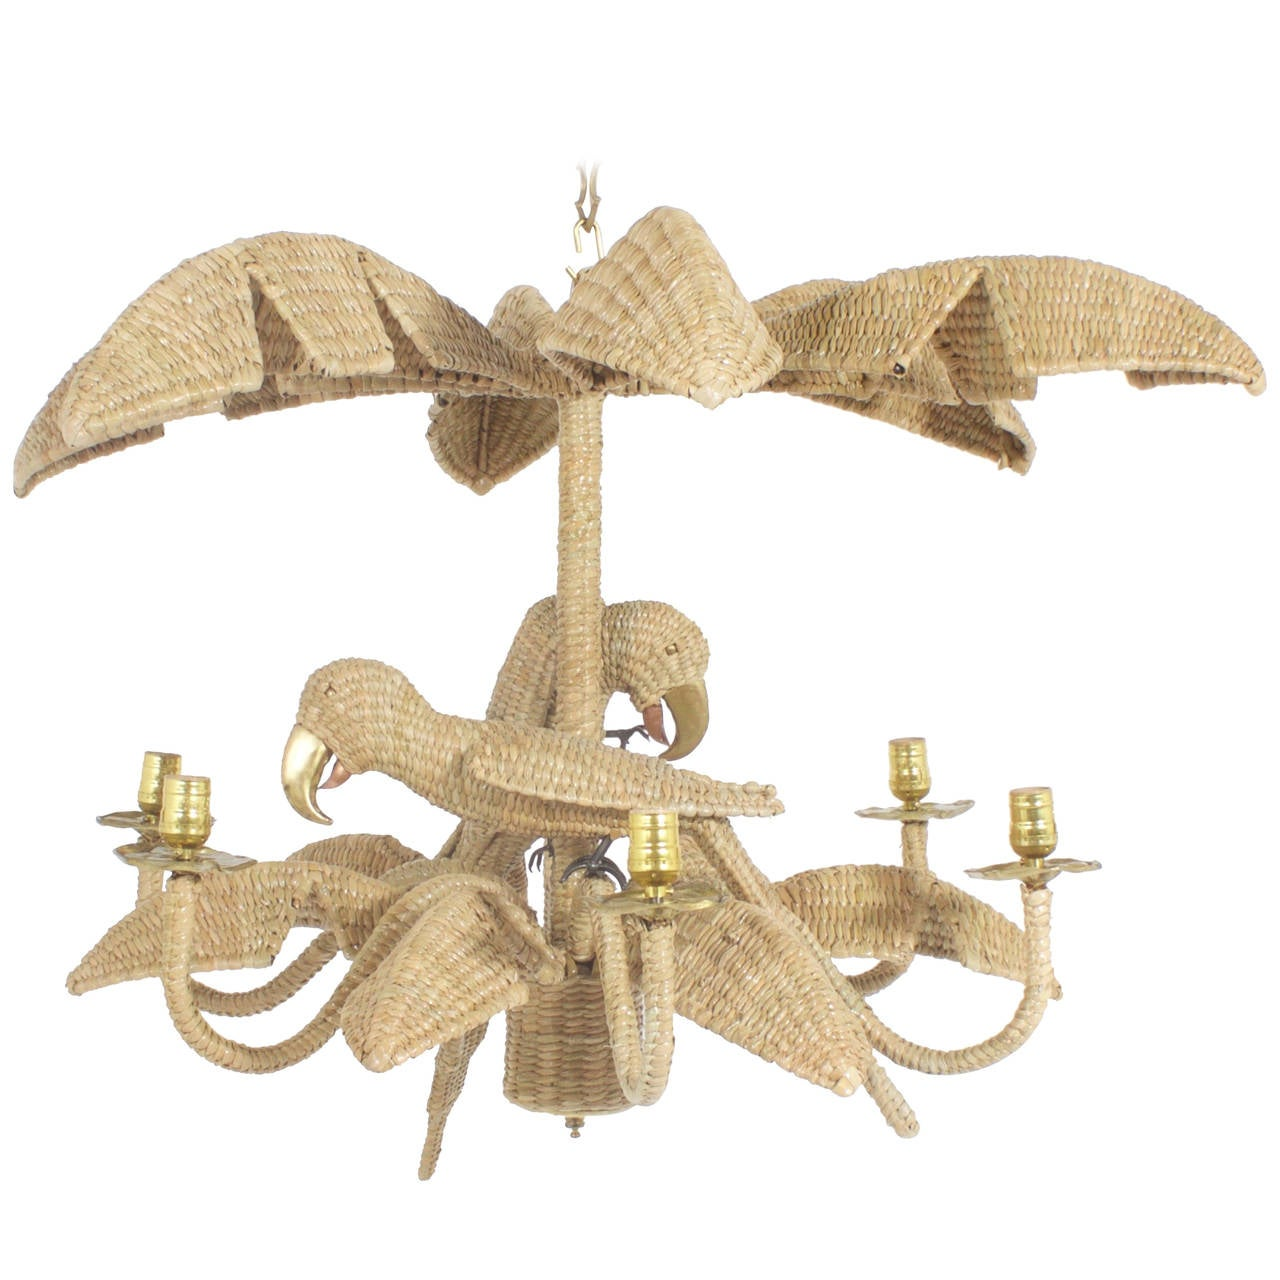 Mario Torres Wicker Parrot Chandelier For Sale